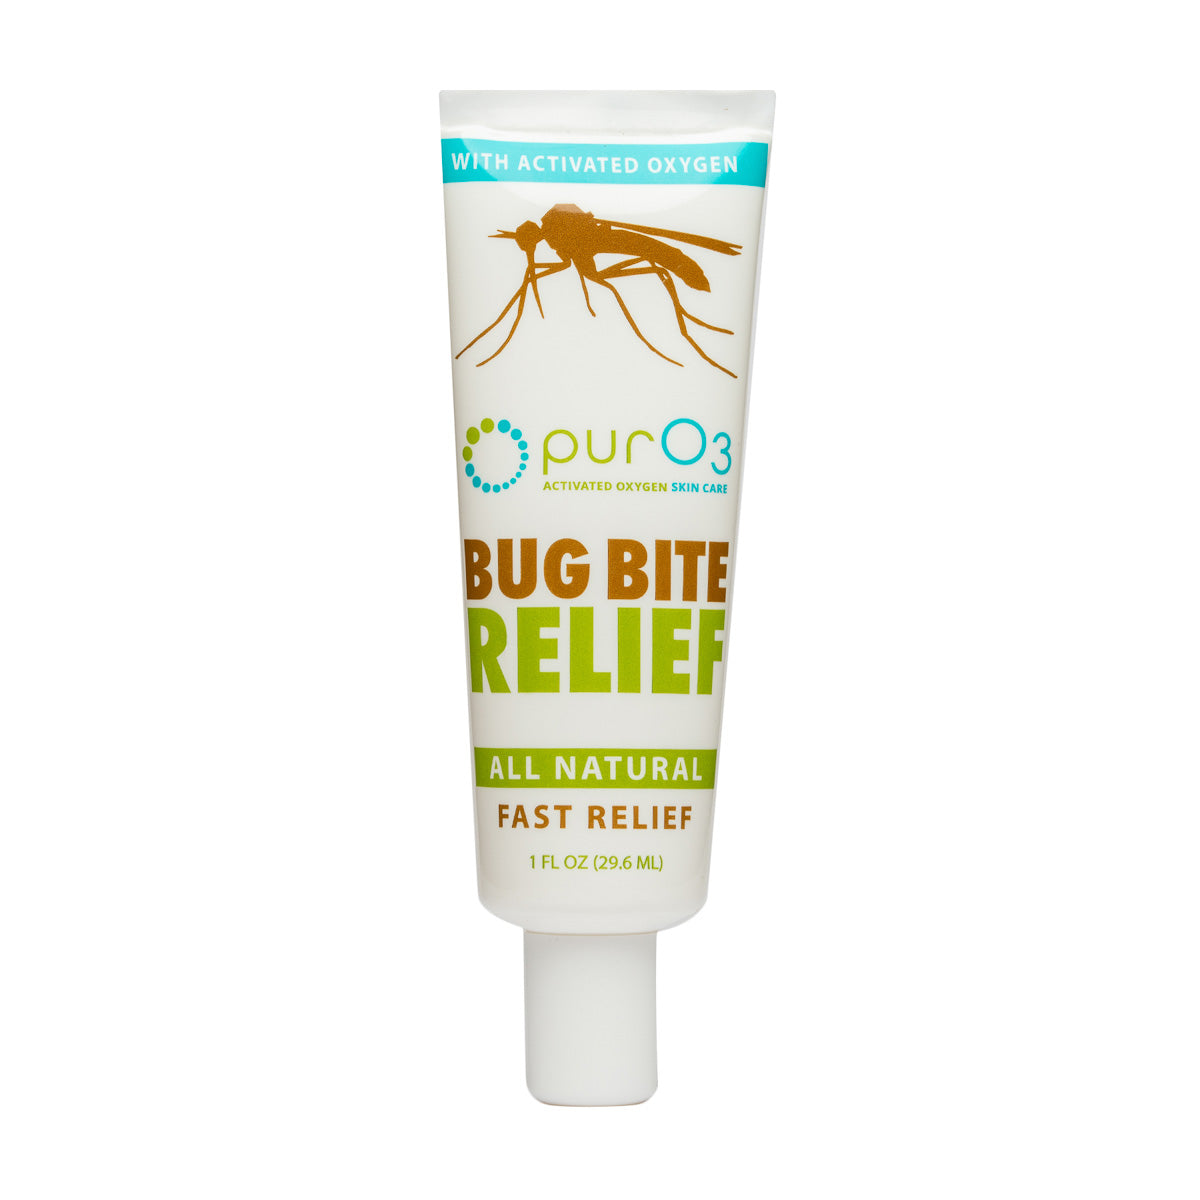 PurO3 Bug Bite Relief (1fl oz / 29.6ml)